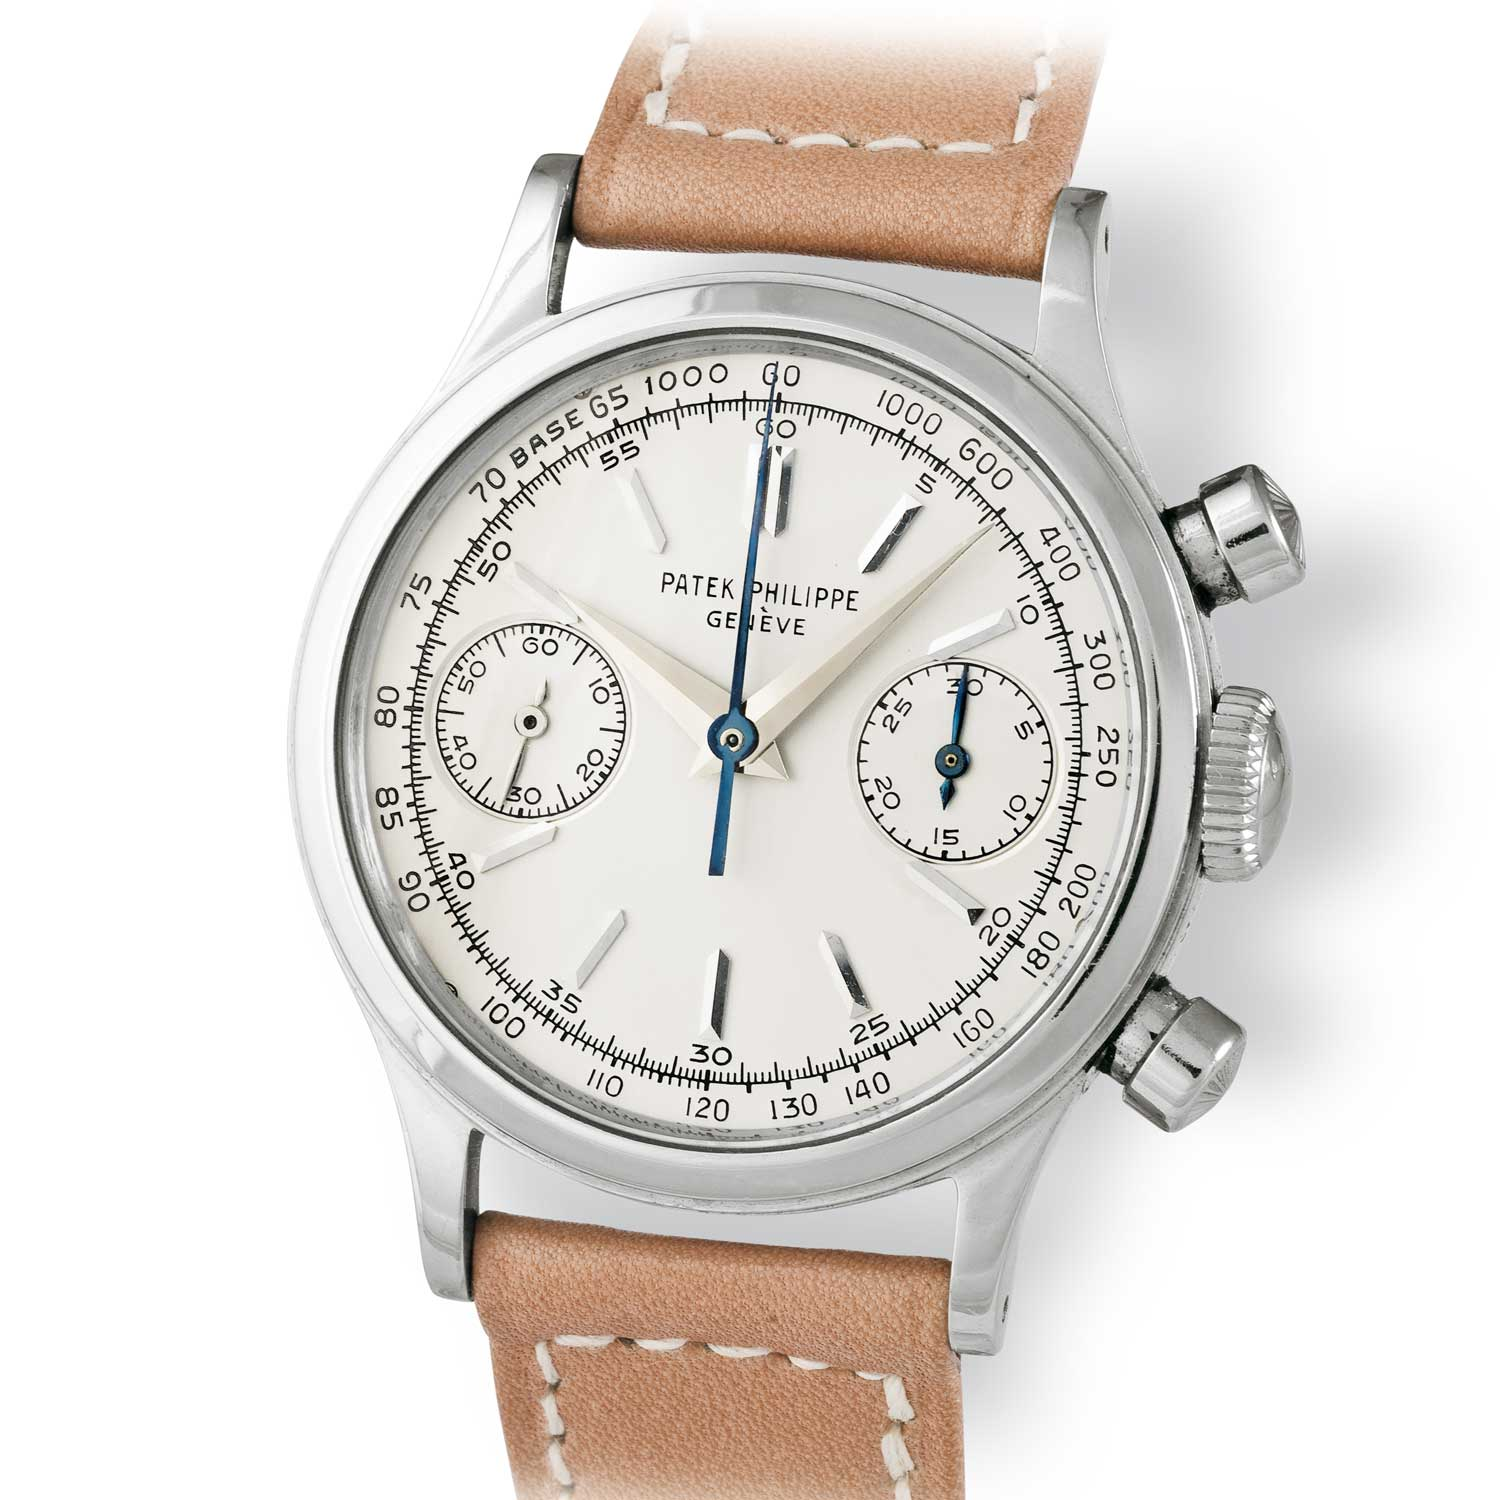 Patek Philippe ref. 1463 steel chronograph with baton markers (Image: John Goldberger)